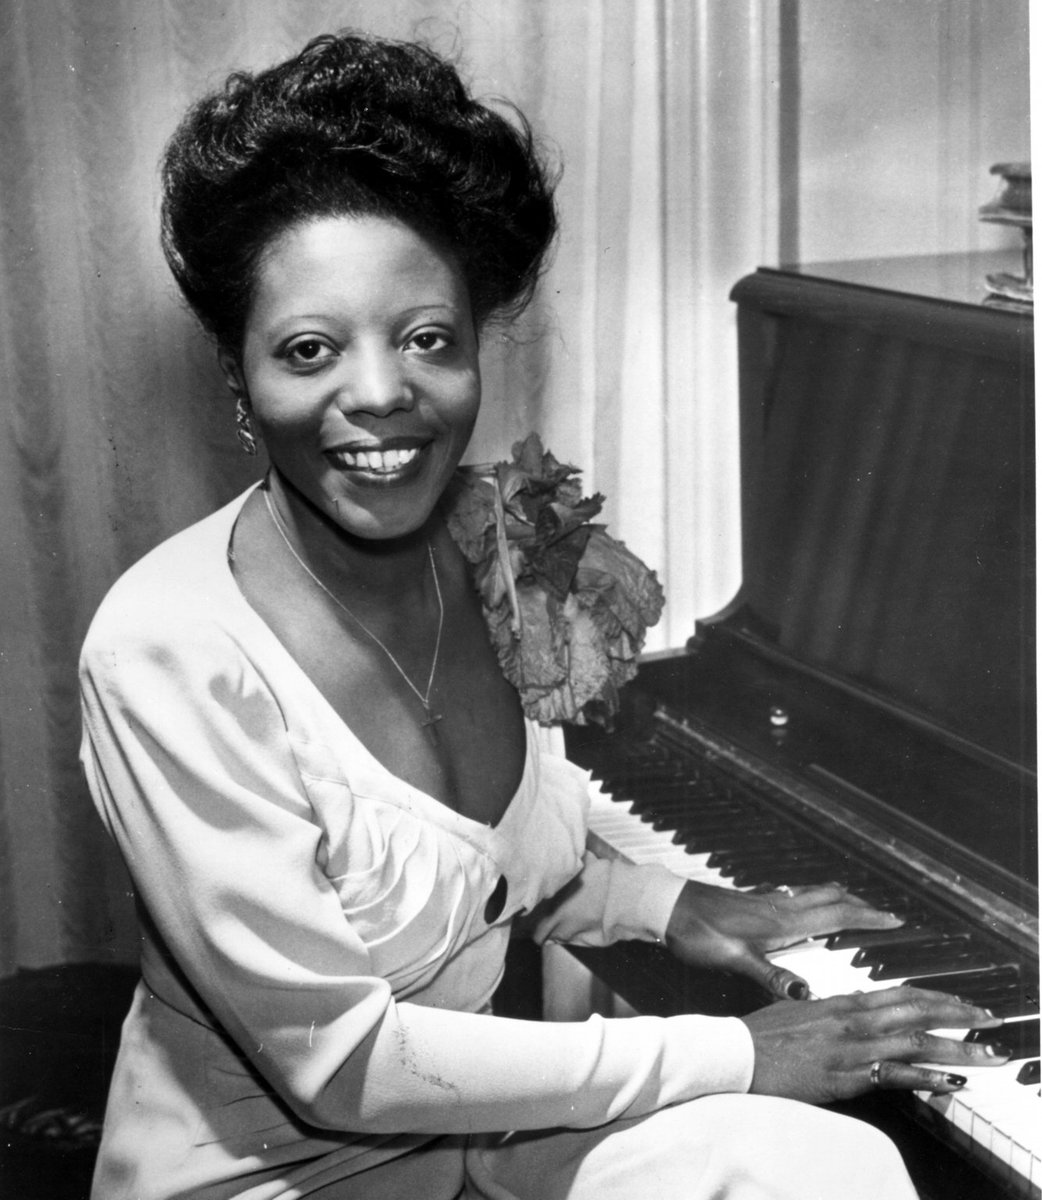 #Jazz pianist and composer Mary Lou Williams mastered many types of music https://t.co/swF7JM3sdA https://t.co/3v9SPQ0lZk